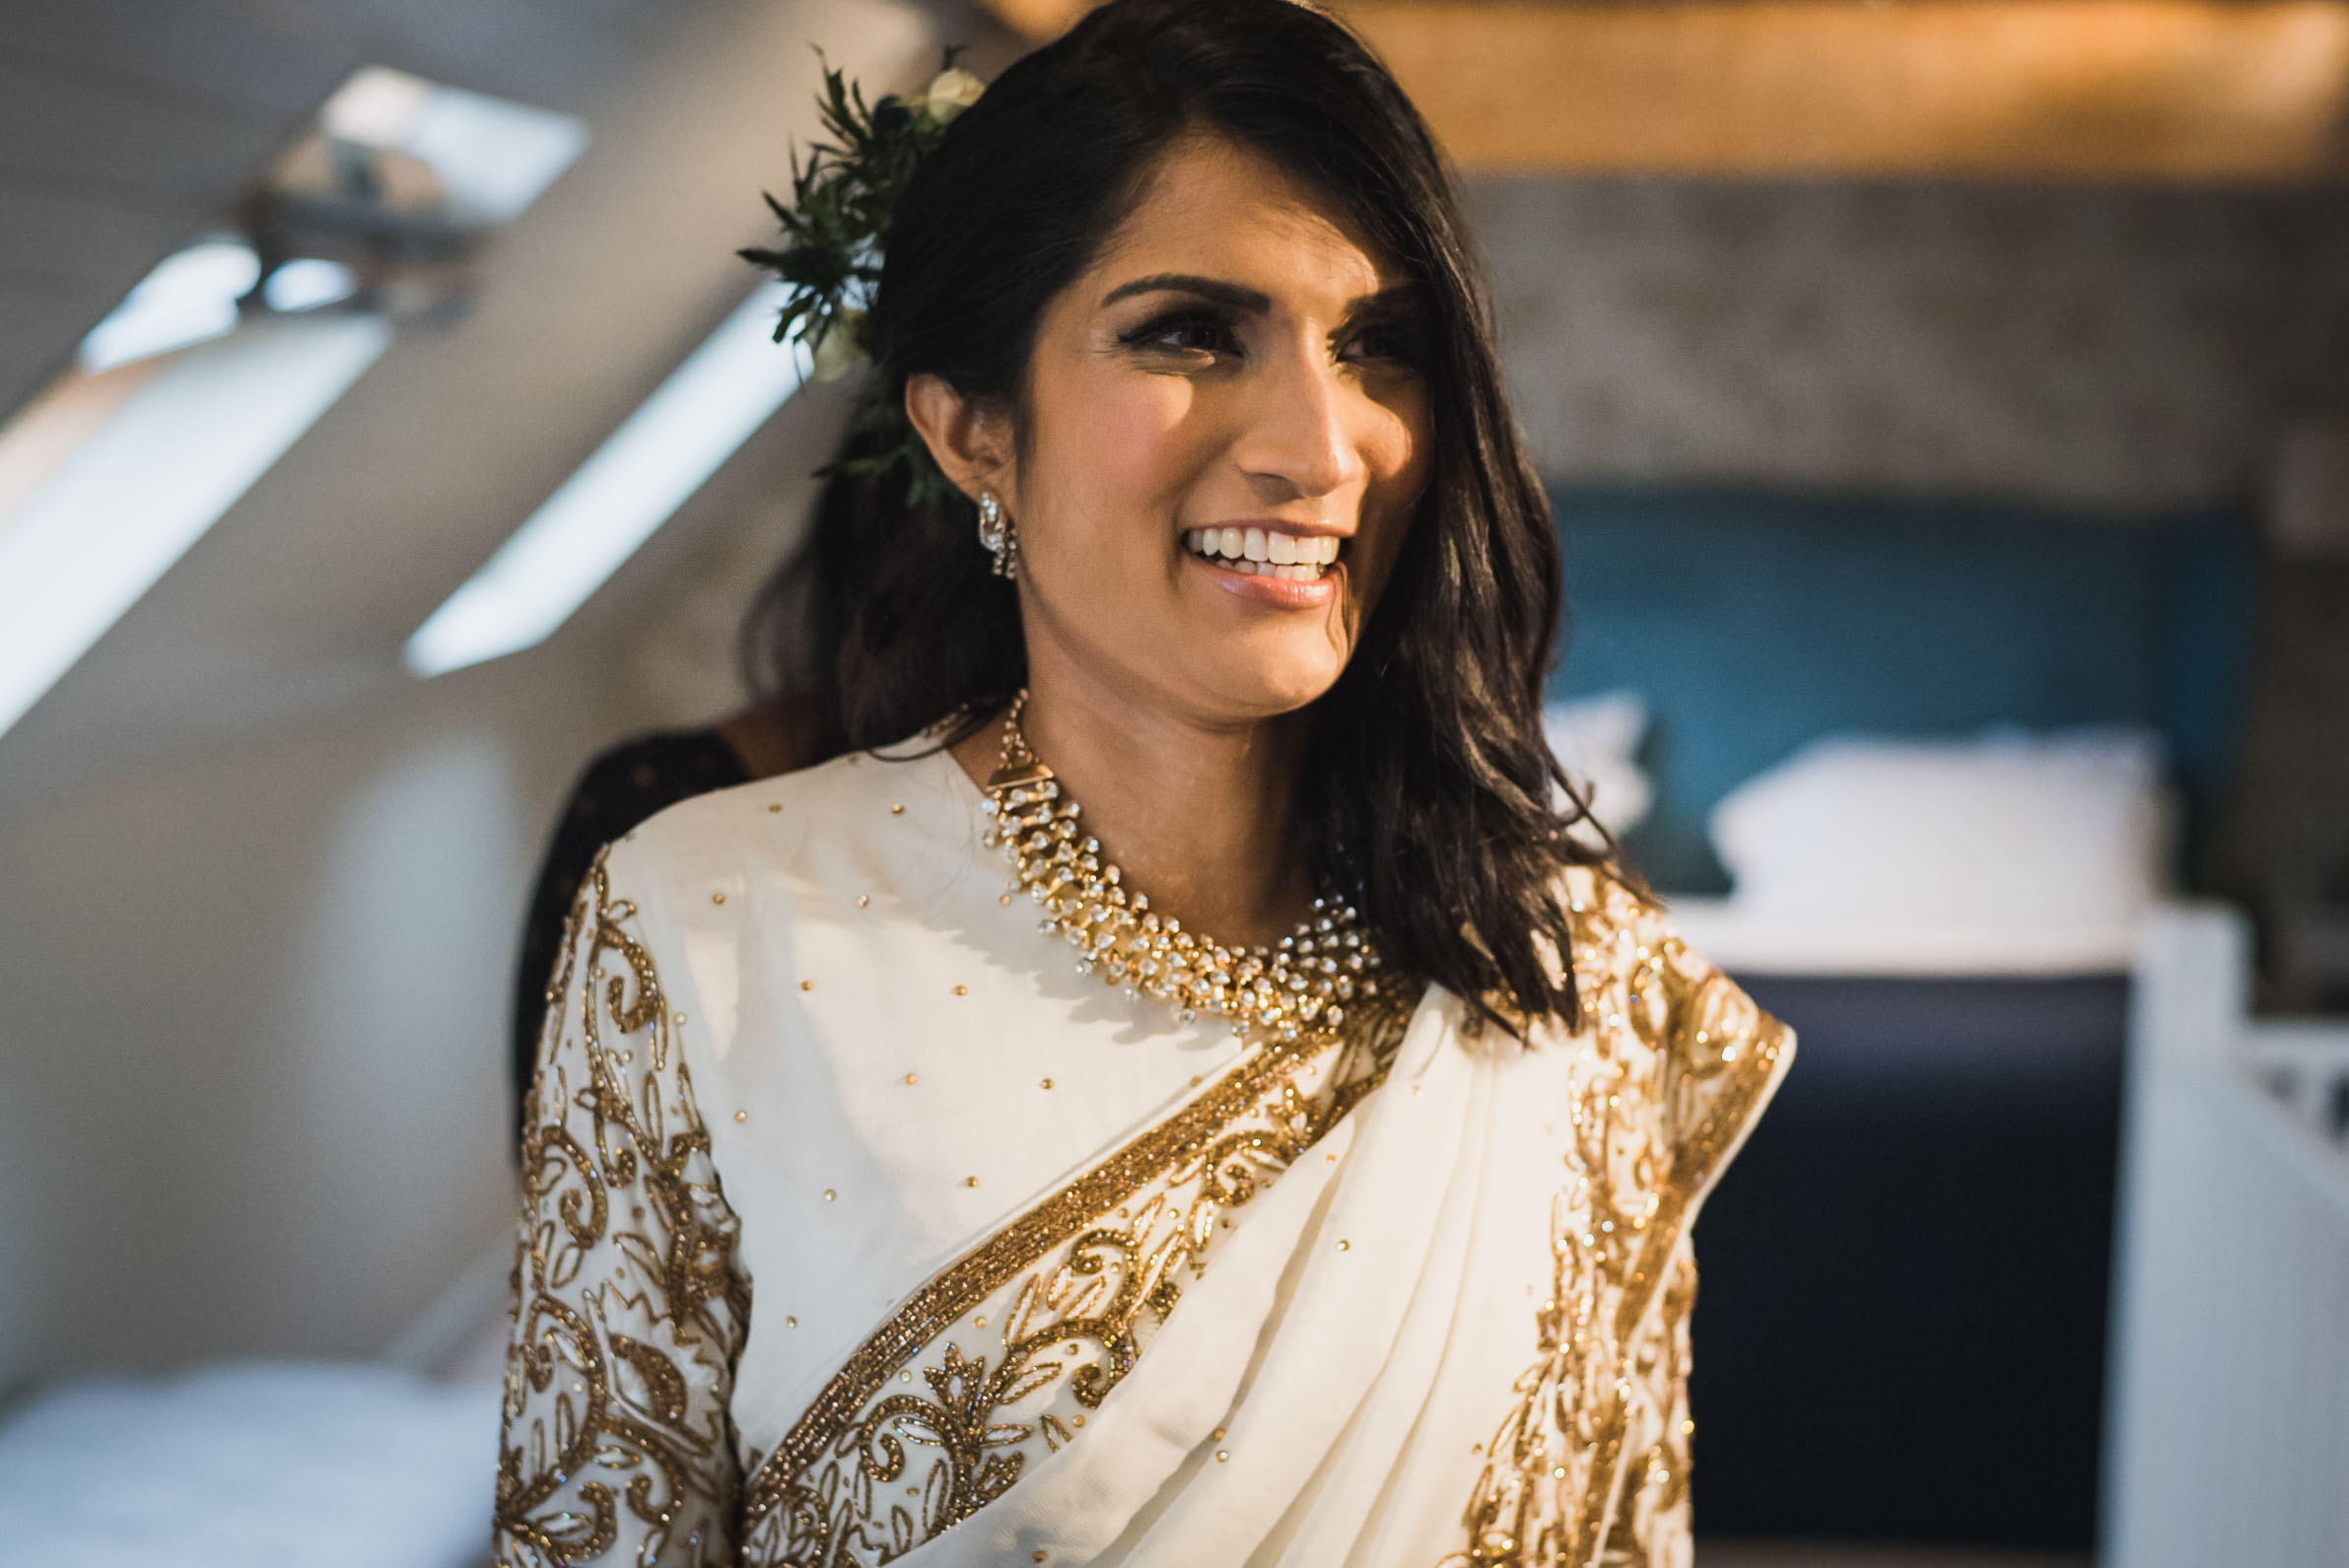 Carine Bea photography, Multicultural wedding, bride getting ready